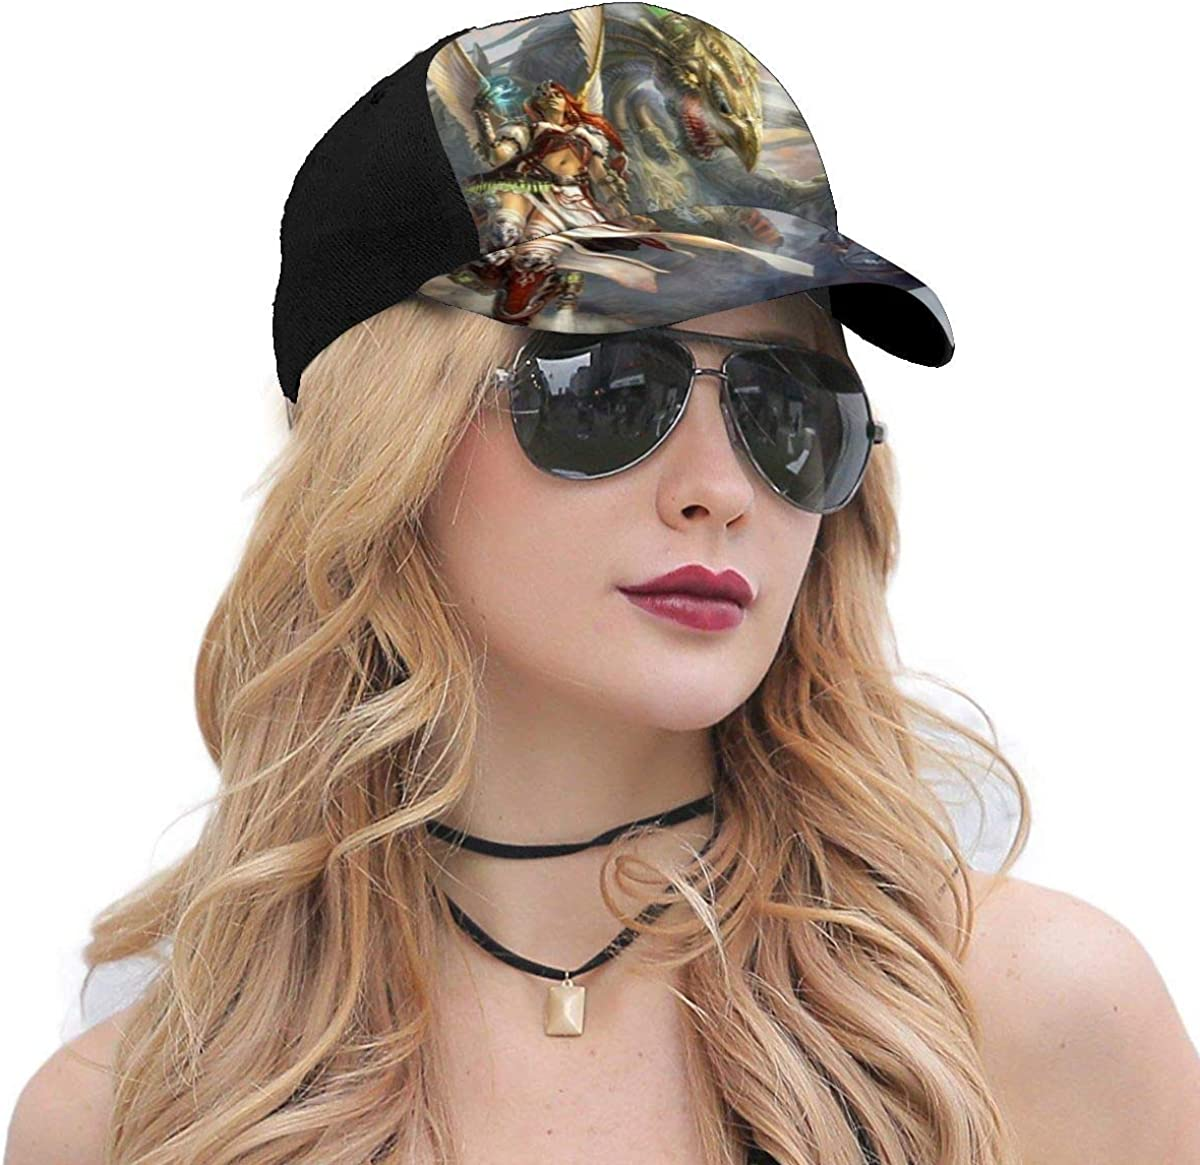 HsHdesign Womens Magical Women 3D Printed Active Caps Adjustable 6-Panel Hats for Suncreen